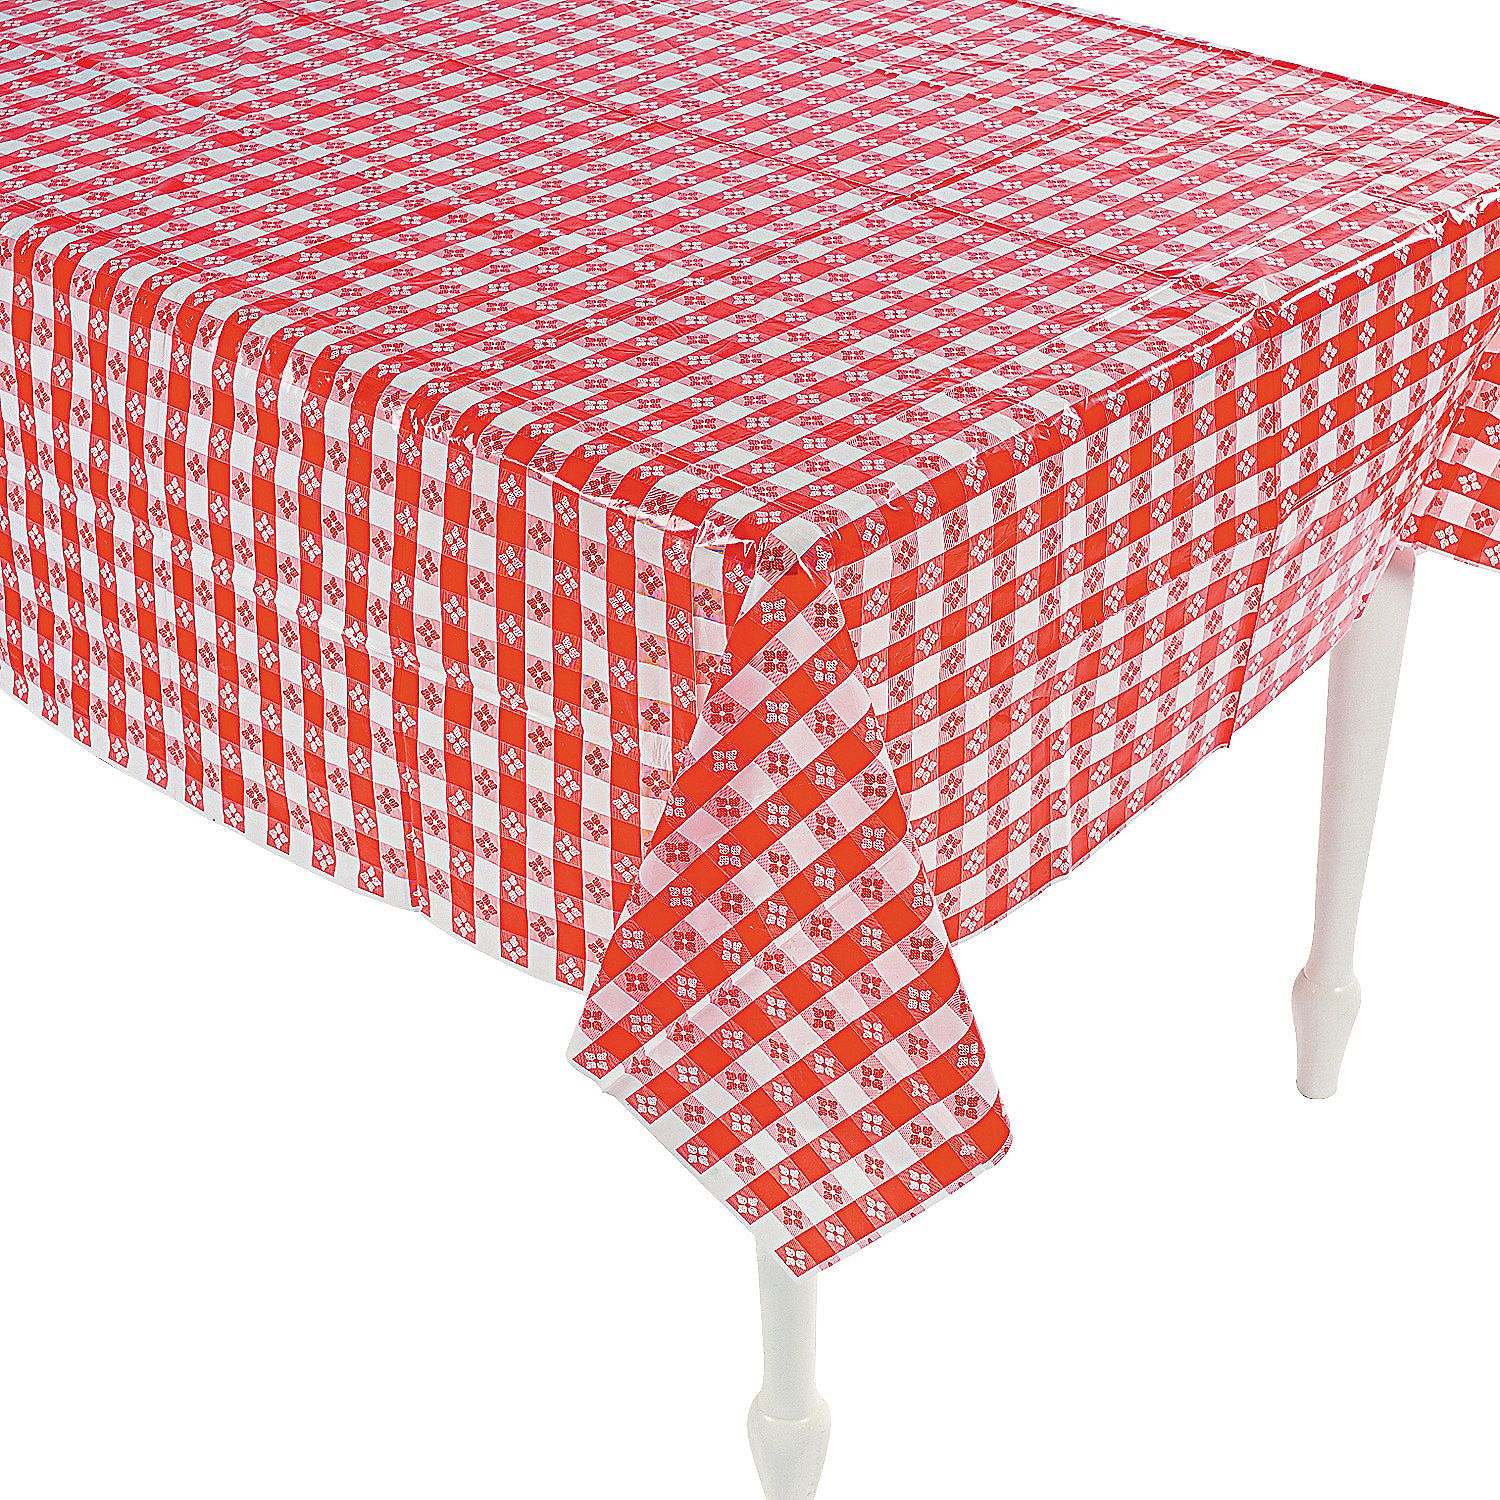 Red White Checkered Plastic Tablecloth Oriental Trading Checkered Tablecloth Picnic Table Covers White Table Cloth